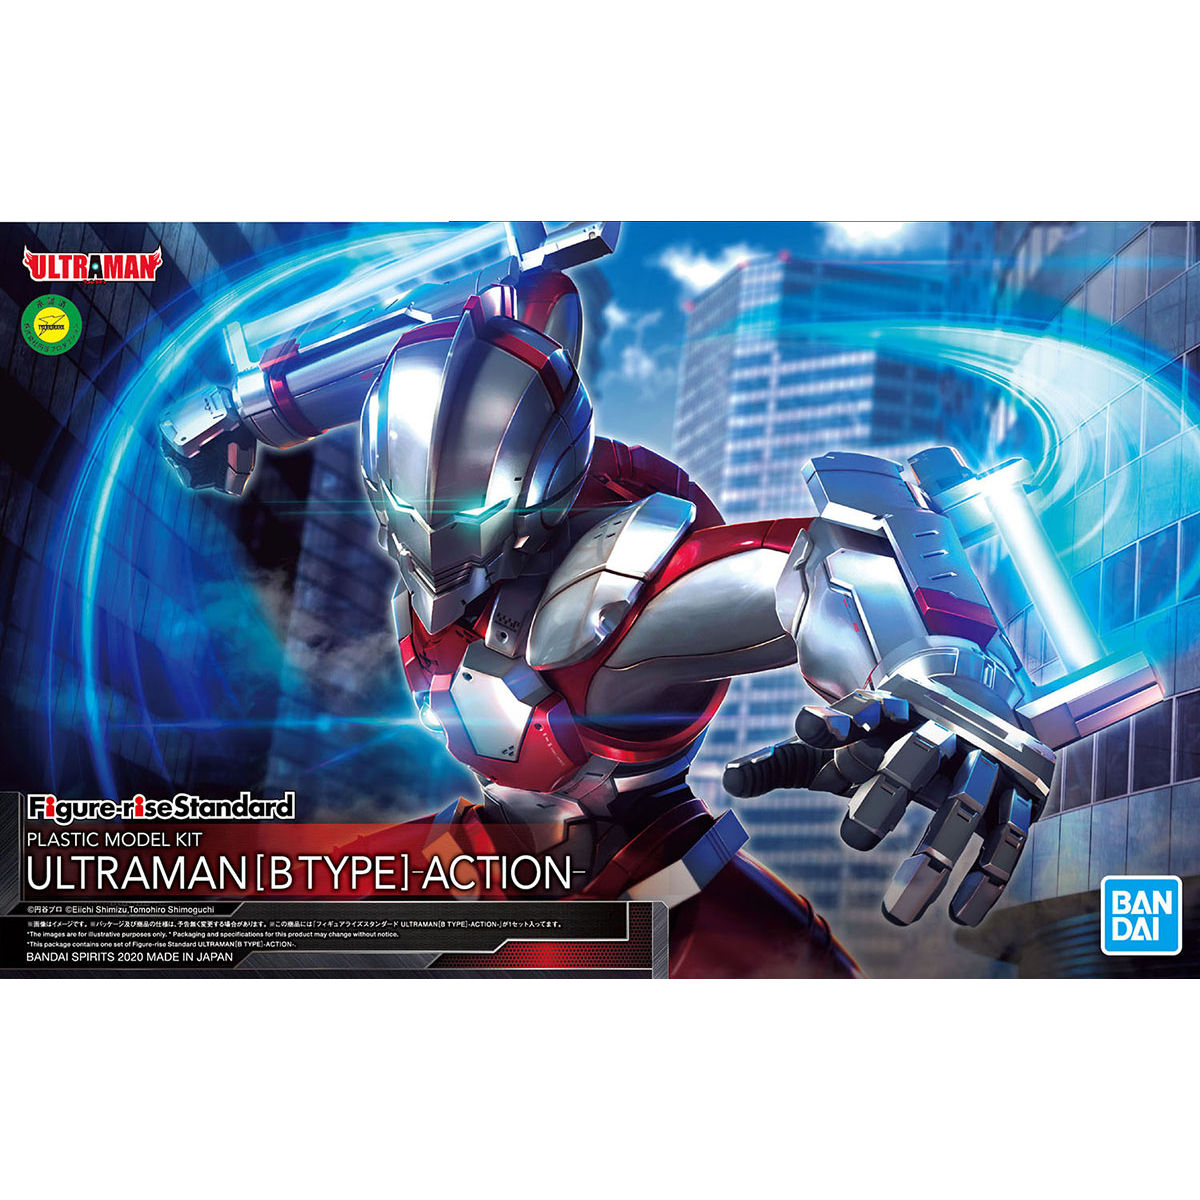 Figure-rise Standard ULTRAMAN [B TYPE] -ACTION- 11